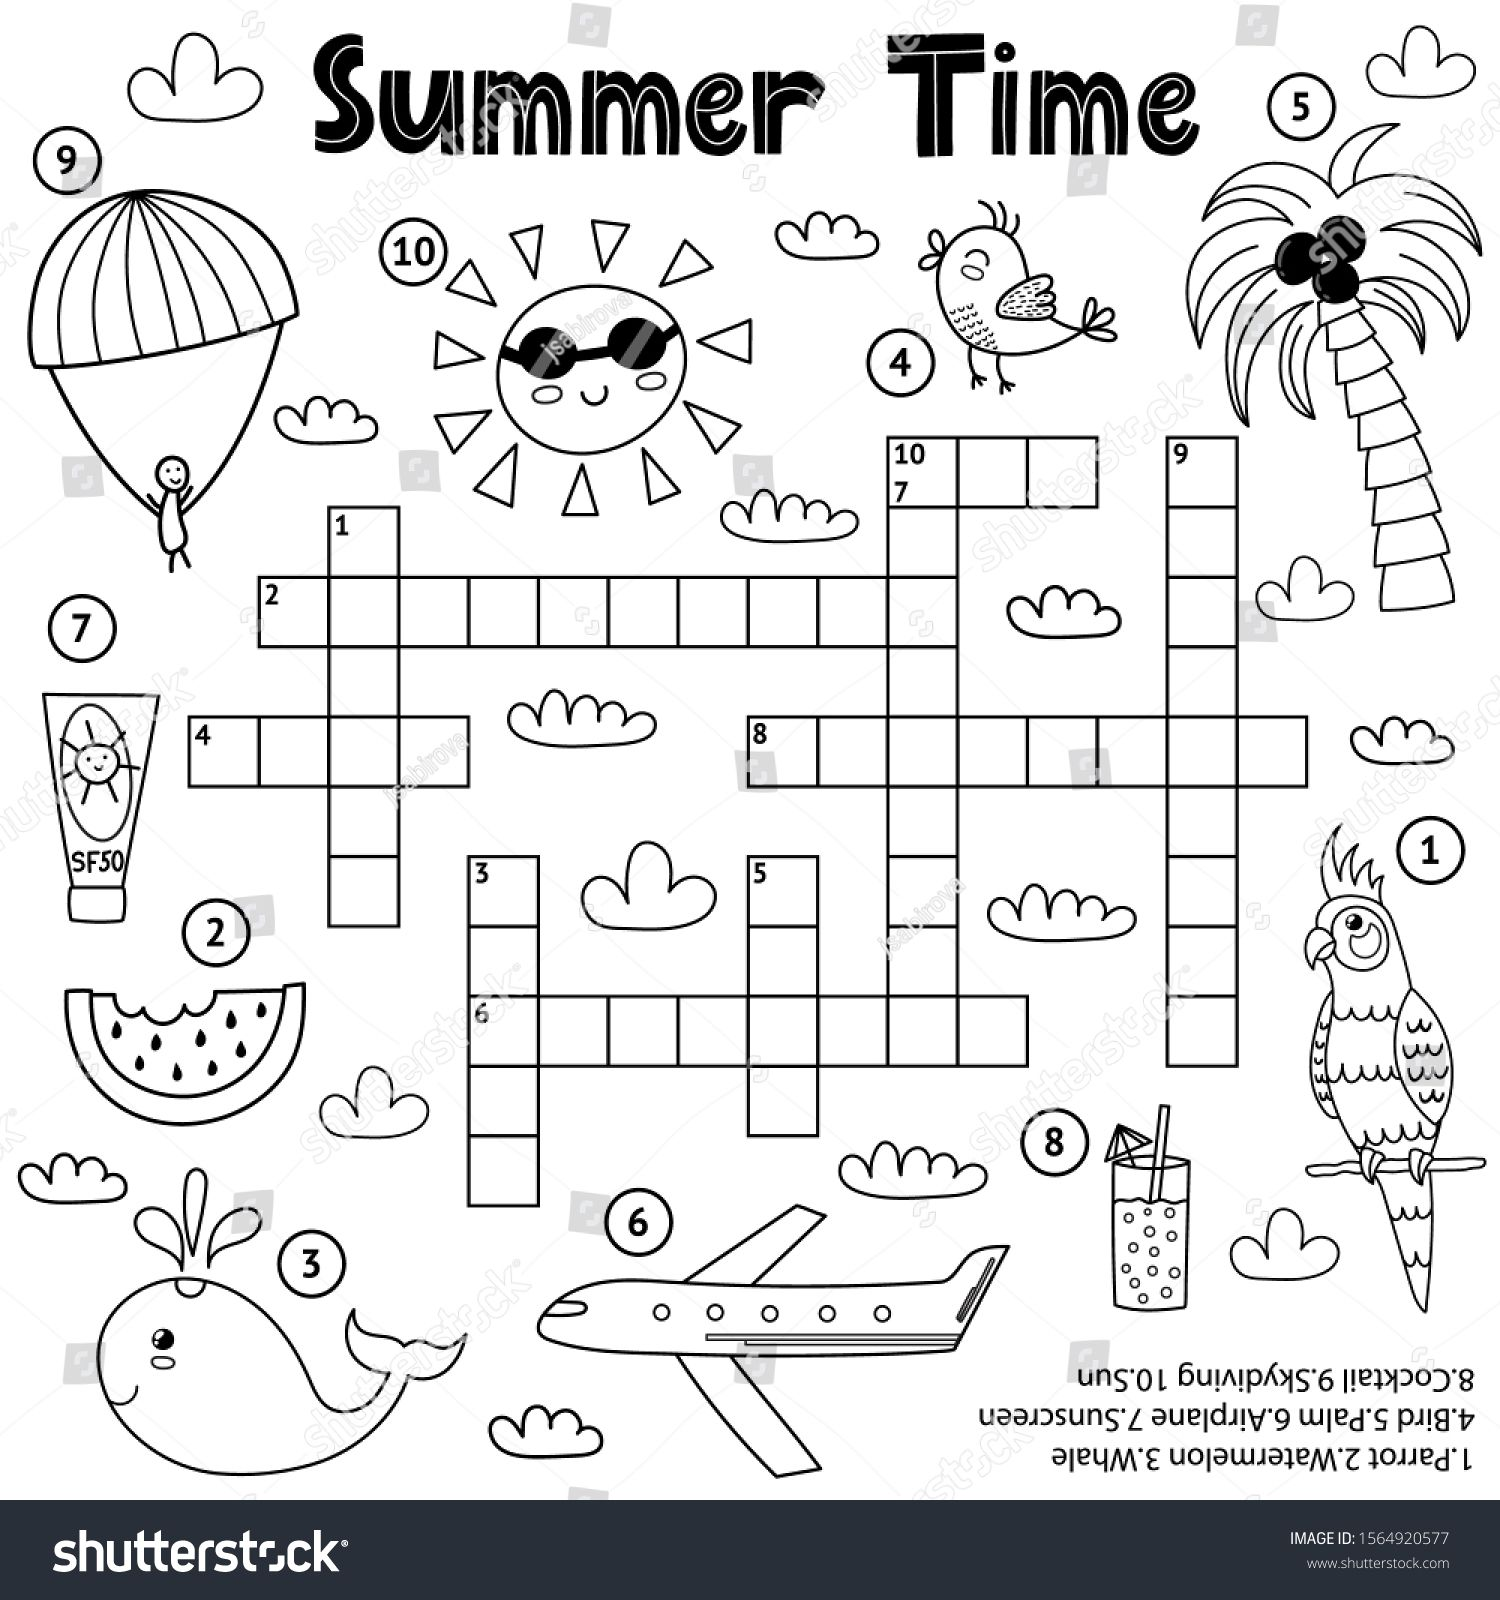 Summer Time Black And White Crossword Game Educational